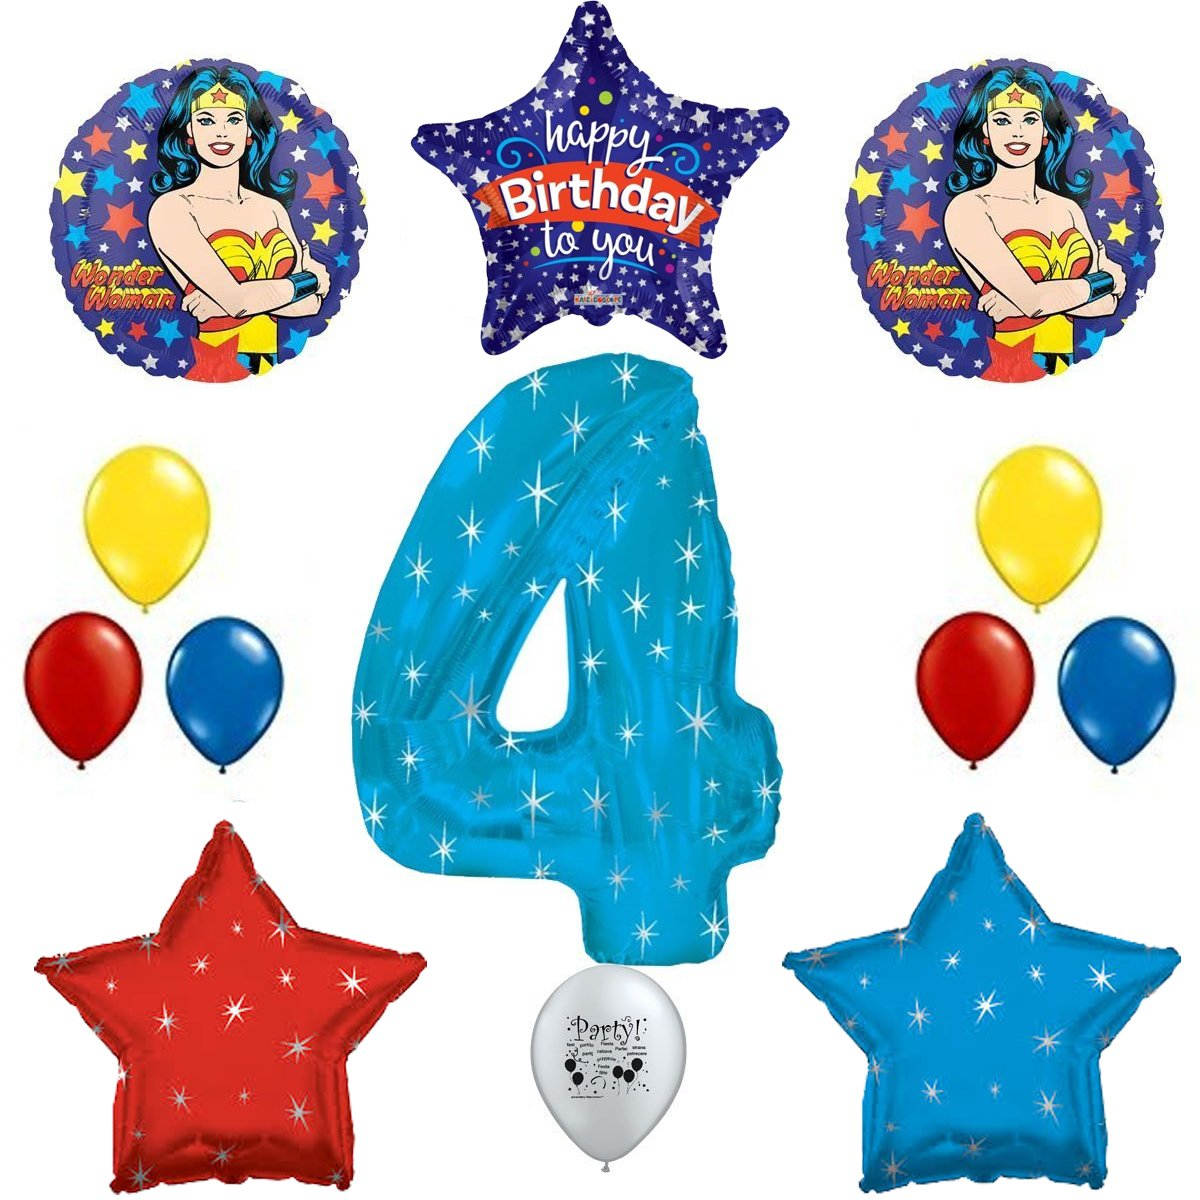 Combined Brands Wonder Woman Party Supplies 4th Birthday Party Supply Balloon Decorations